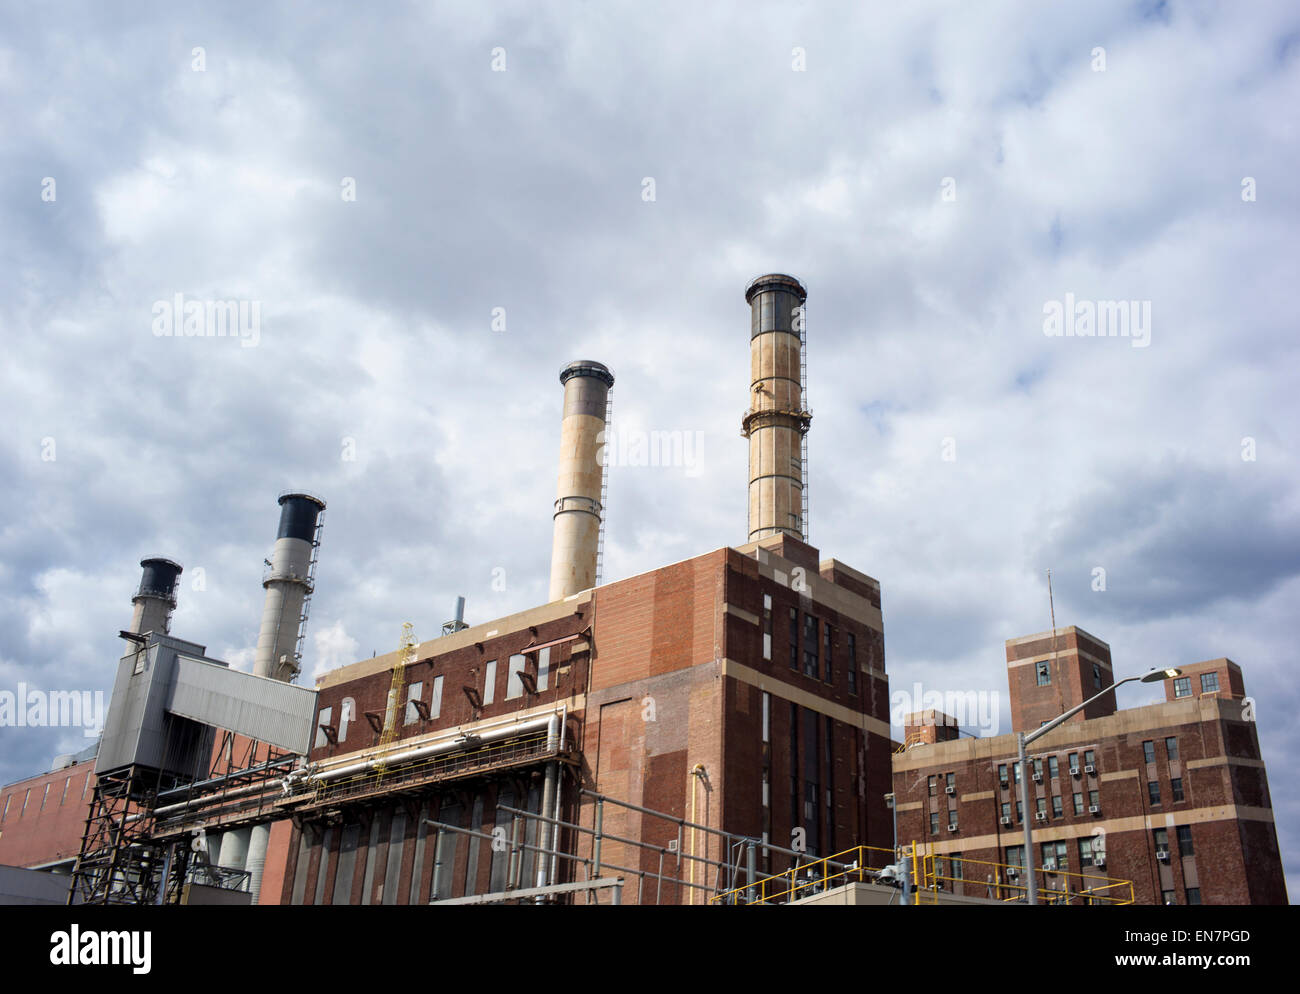 A Consolidated Edison power plant is seen along New York's FDR Drive in Manhattan, New York. - Stock Image